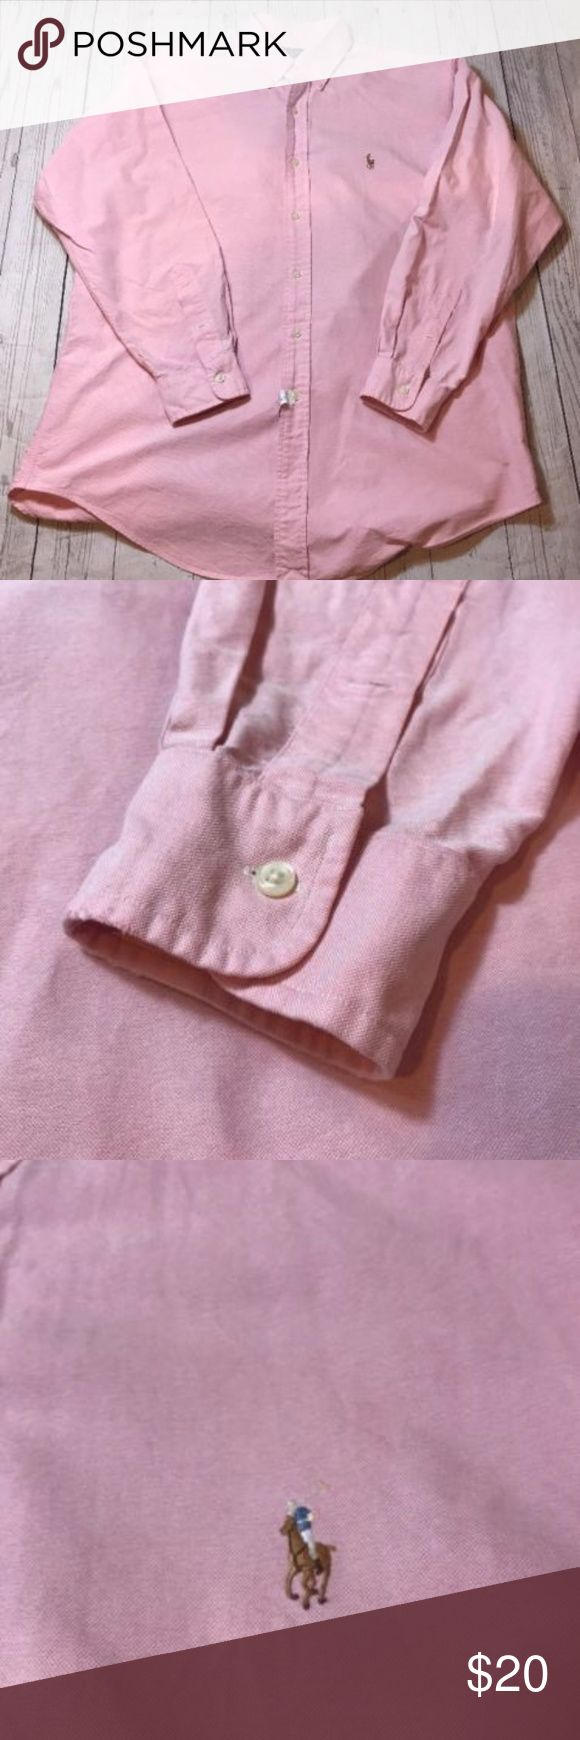 "RALPH-LAUREN-Yarmouth-Mens-16-33-Pink-Long-Sleeve Shirt in very good condition with no stains or holes.  Chest: 26""  Length: 31""  Thanks for looking!  Please subscribe to my store for updates on new items! Polo by Ralph Lauren Shirts Casual Button Down Shirts"